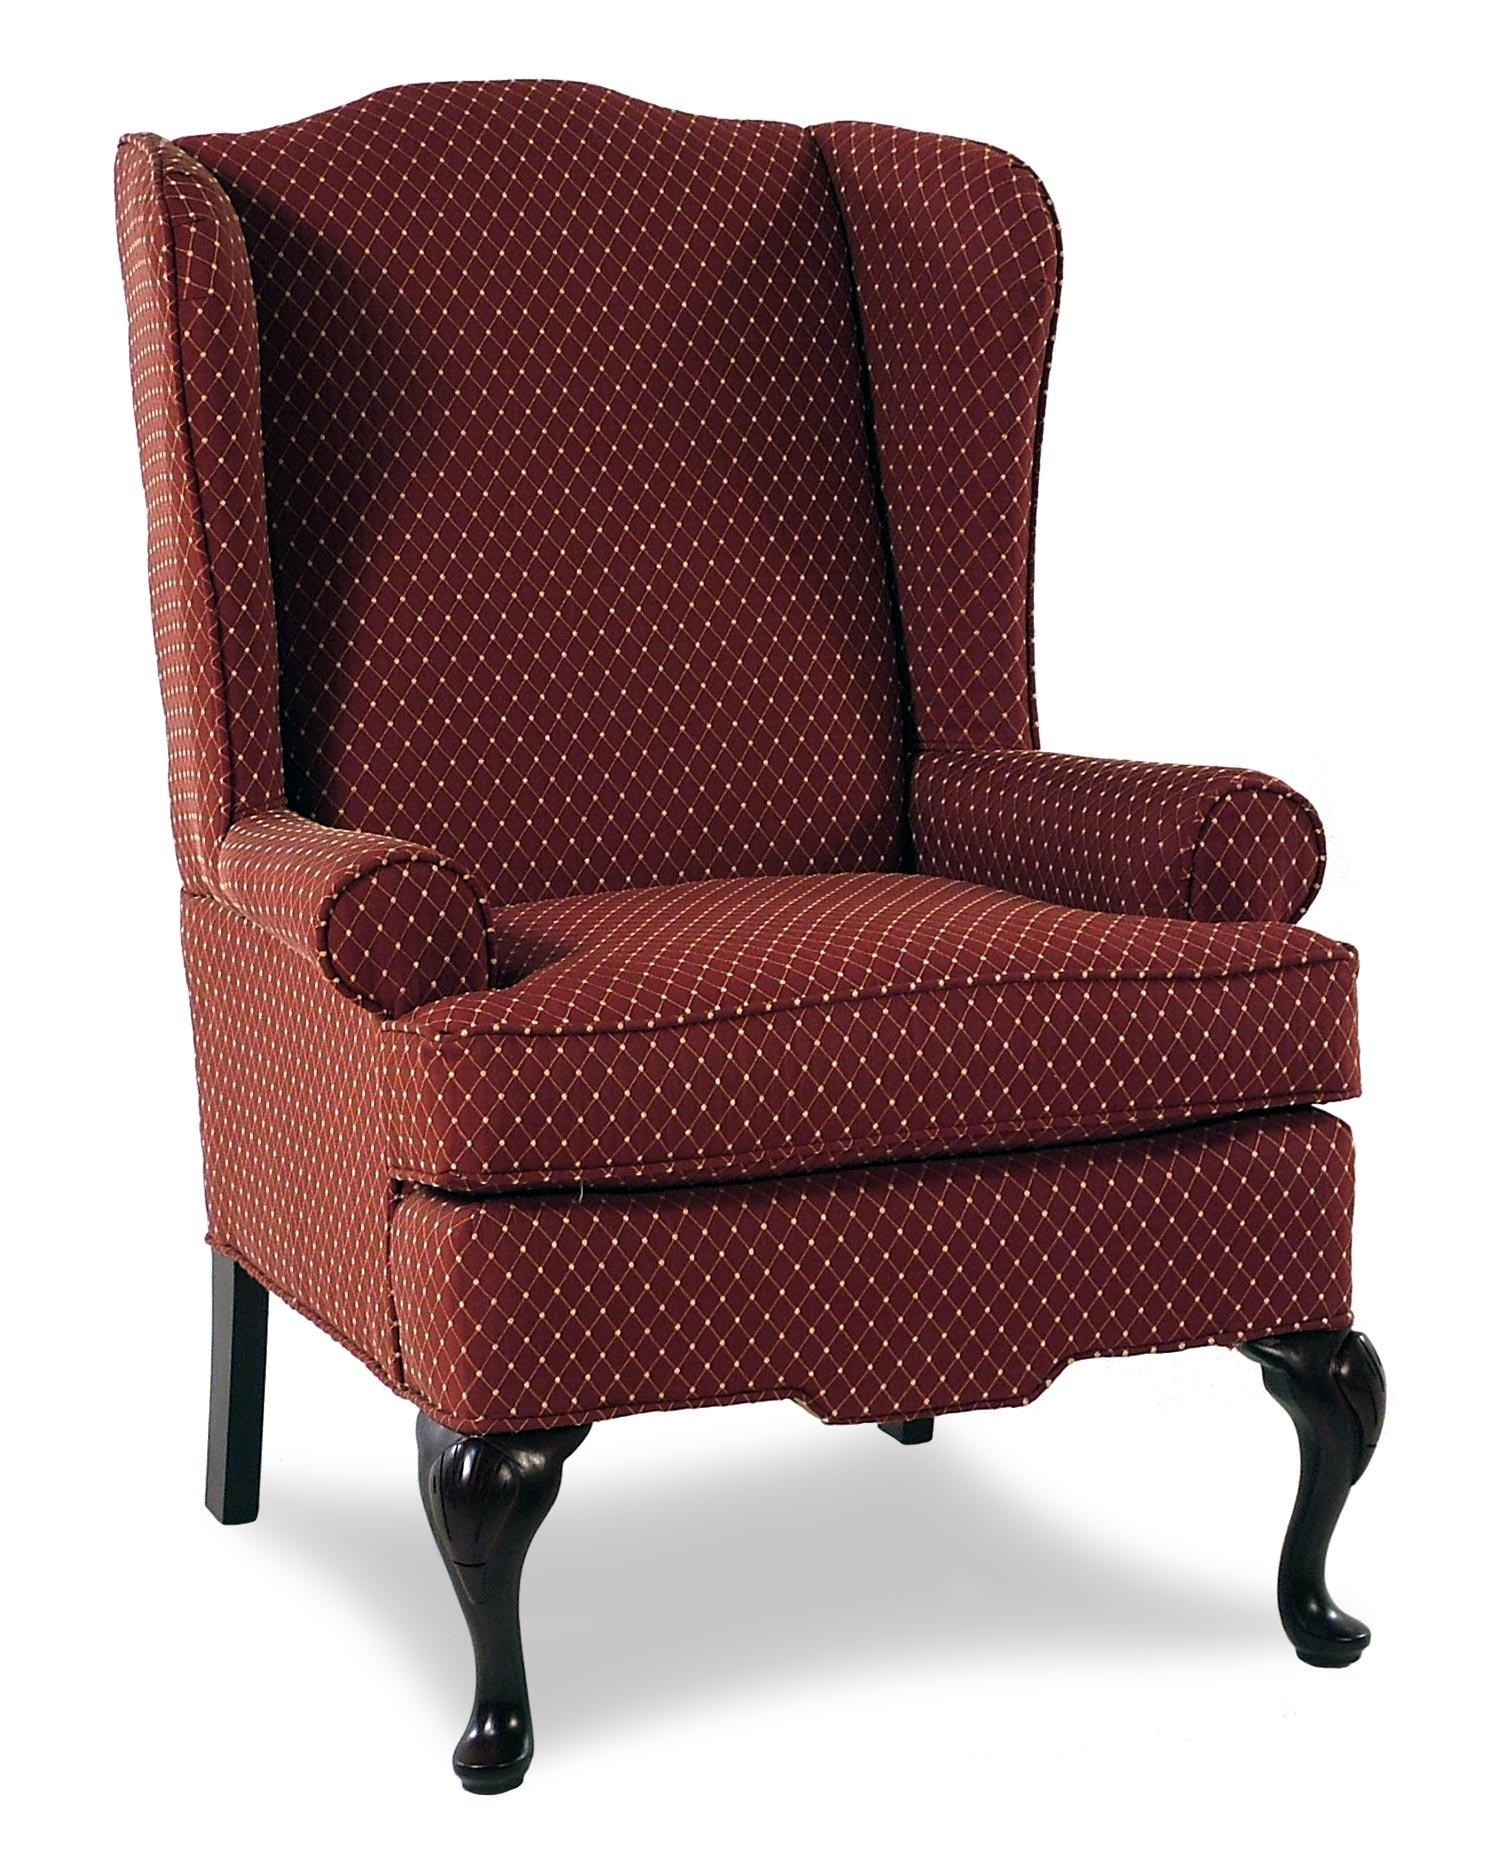 Cozy Life Audrey Upholstered Wing Chair - Item Number: 0375-AUDREY26